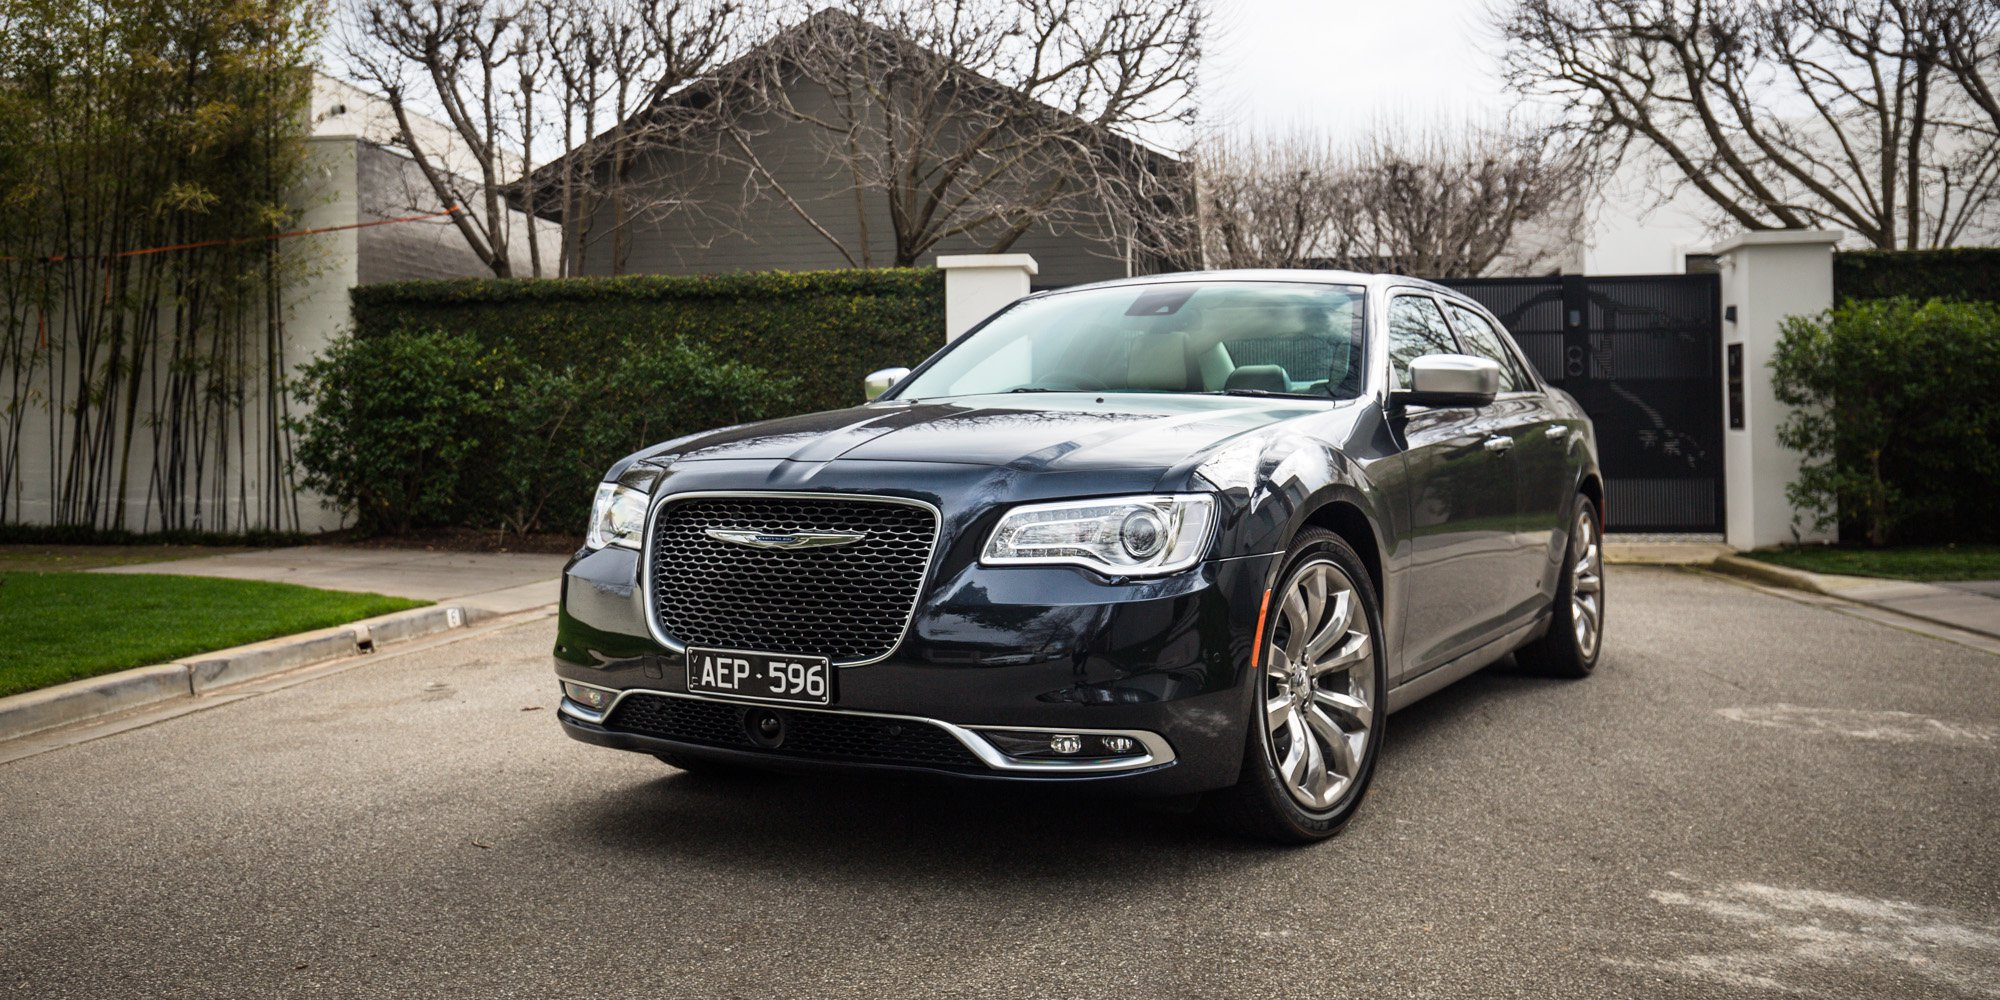 2015 Chrysler 300 Review: 300C Luxury | CarAdvice